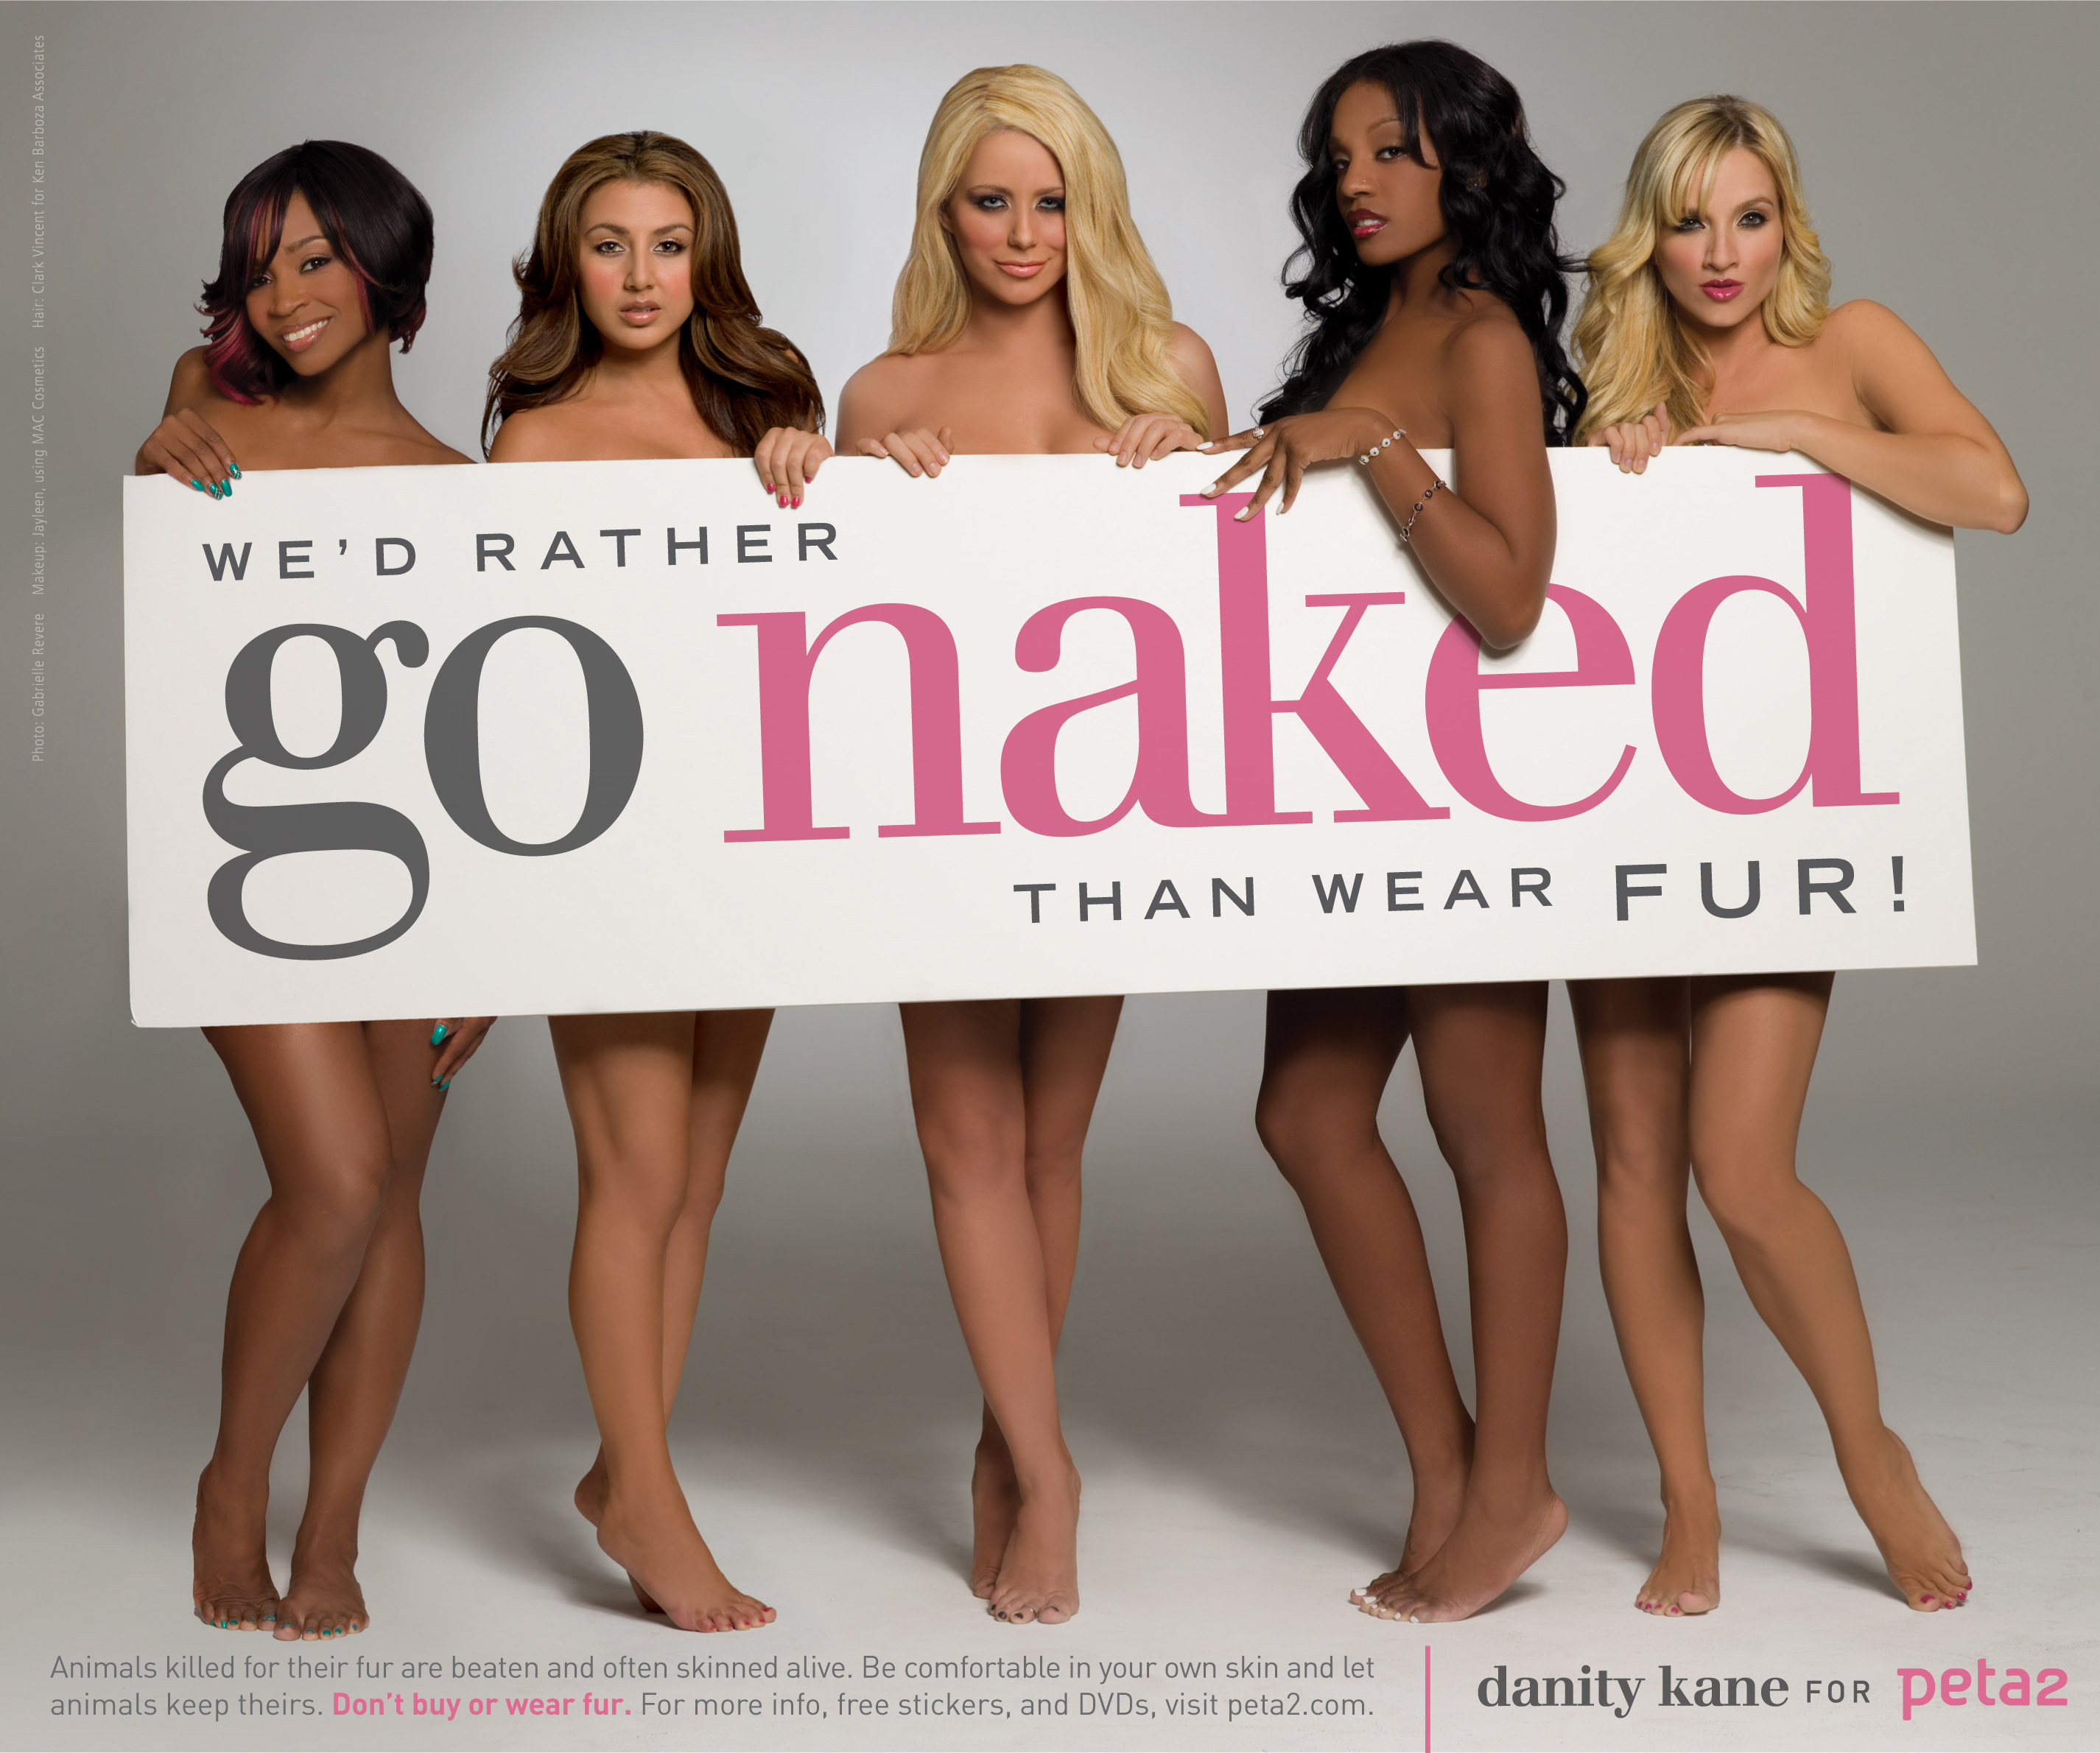 Danity kane nude something is